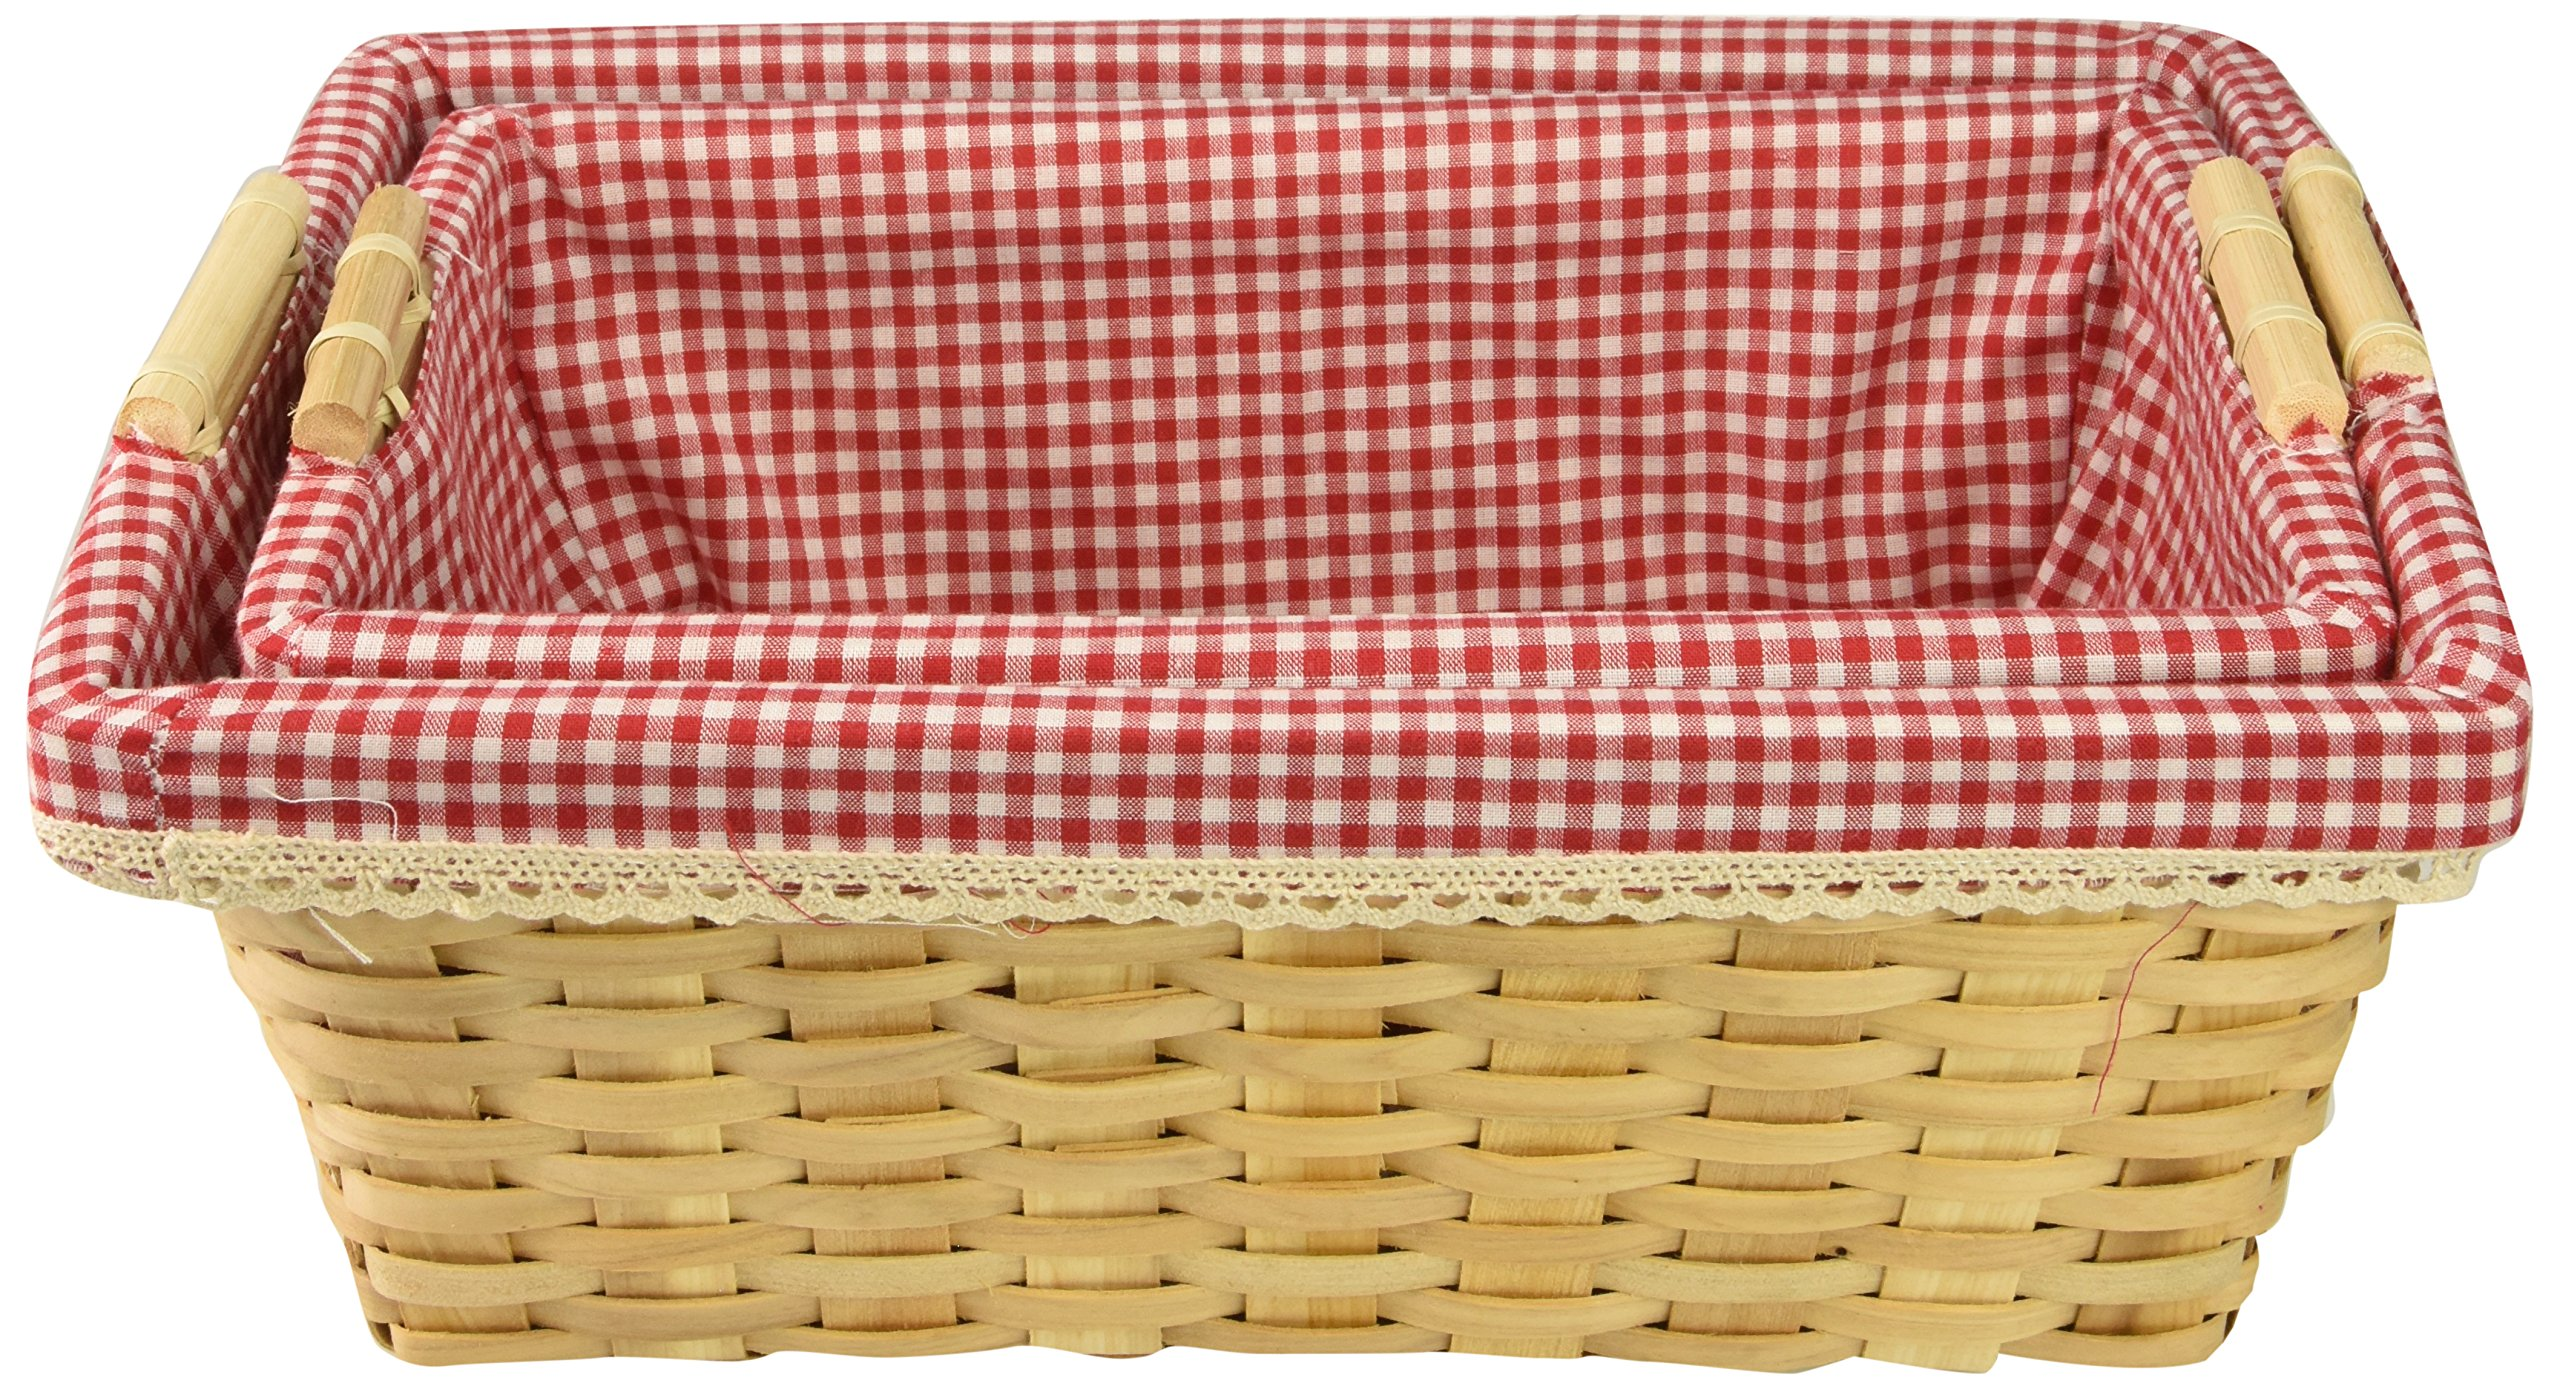 Vintiquewise(TM) Gingham Lined Baskets Set of 2 by Vintiquewise (Image #2)